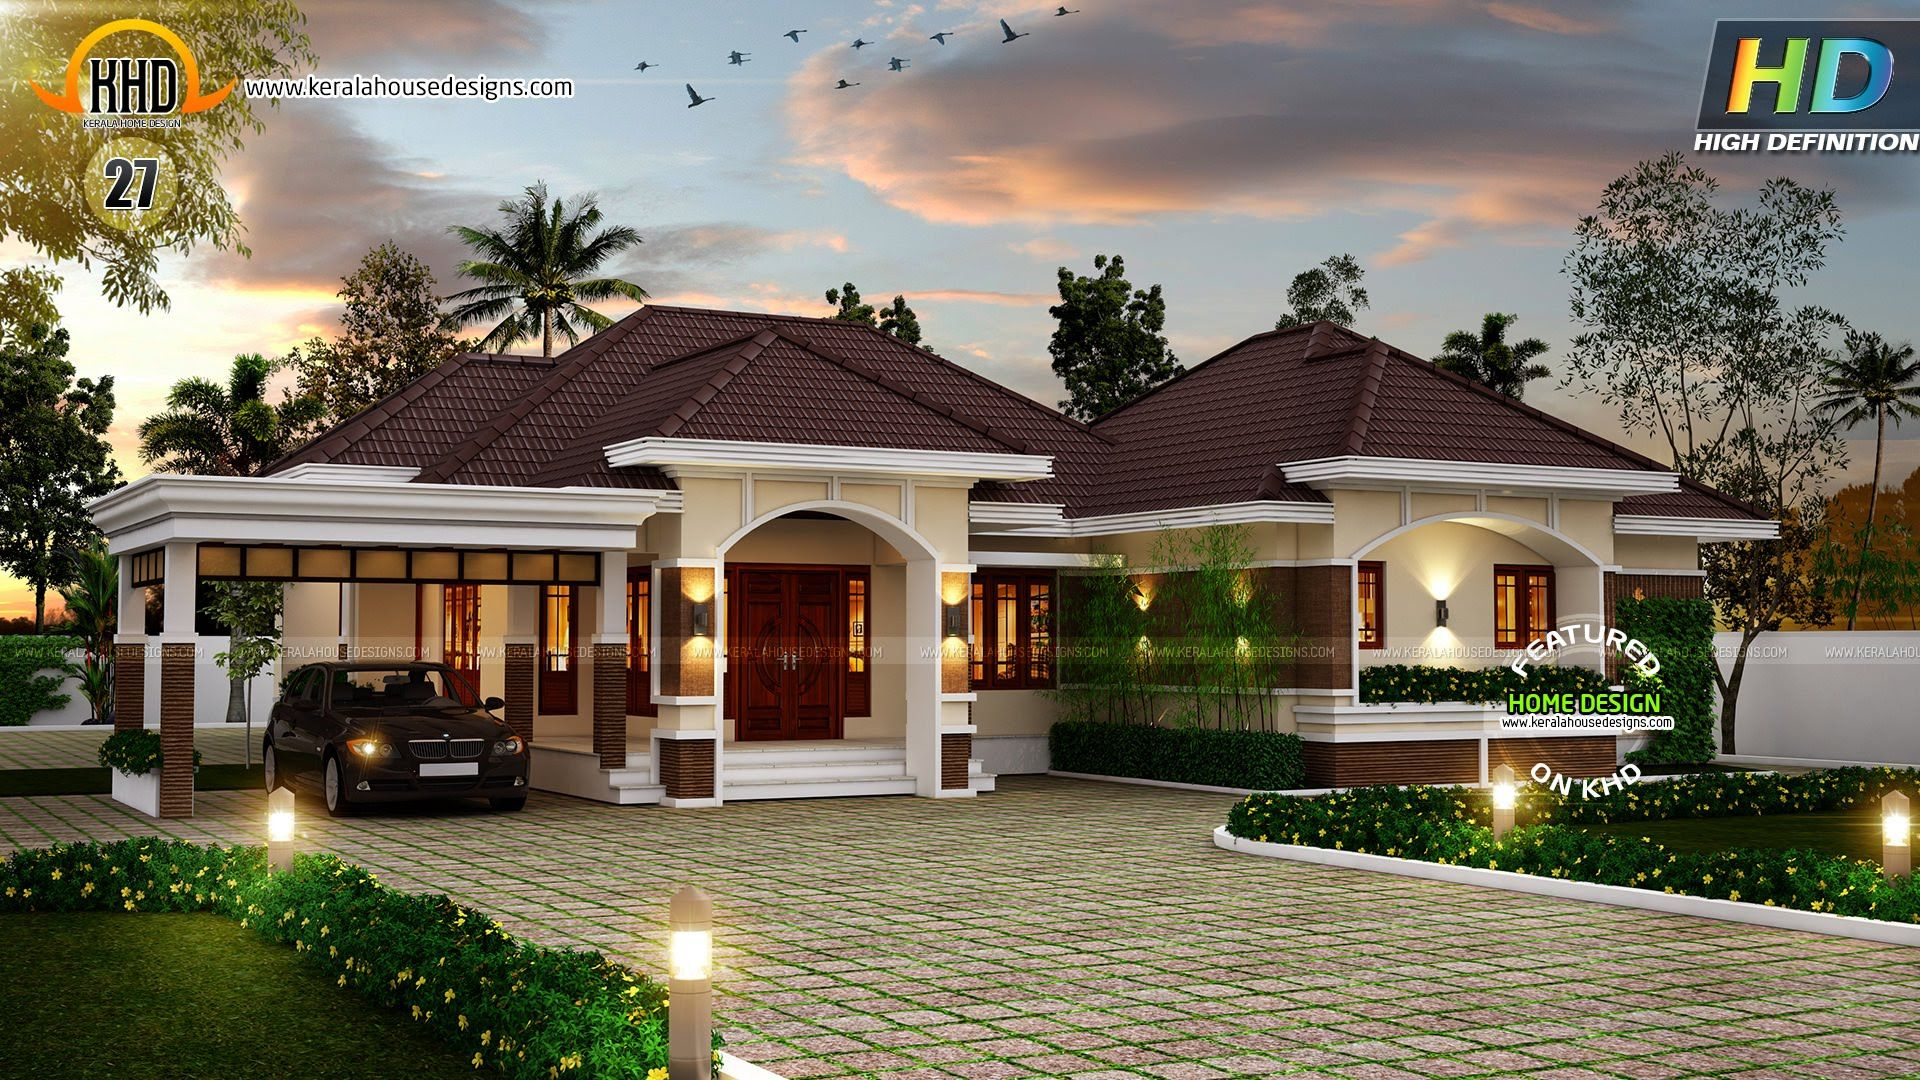 New House Plans For October 2015 Bungalow House Design Kerala House Design Modern Bungalow House